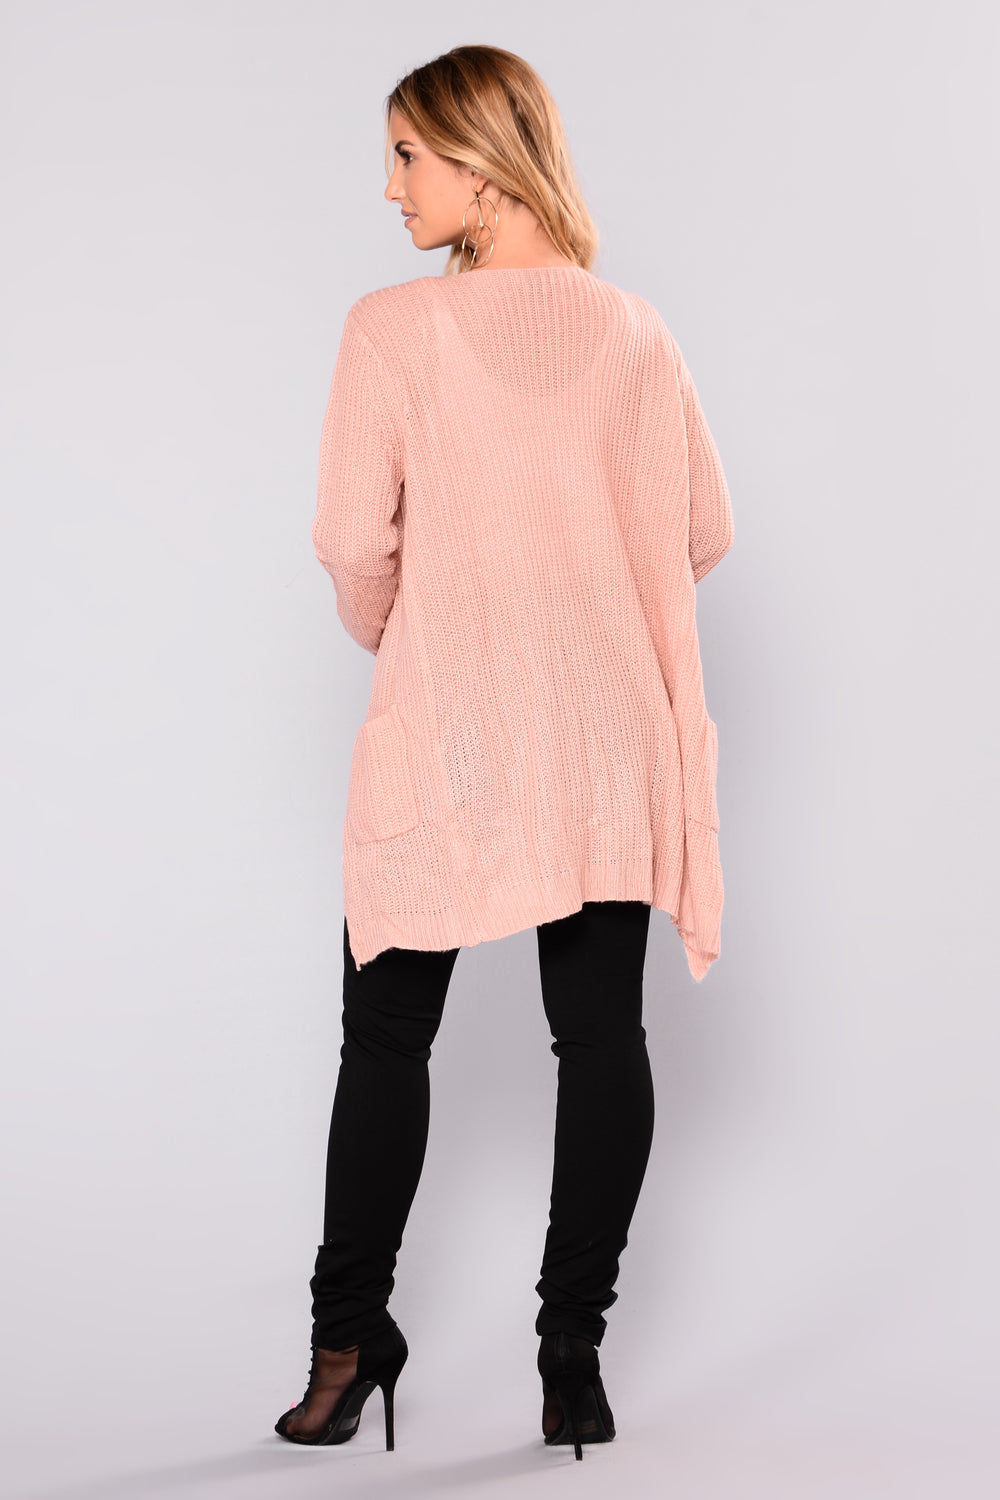 Just Jane Ribbed Cardigan - Dusty Pink